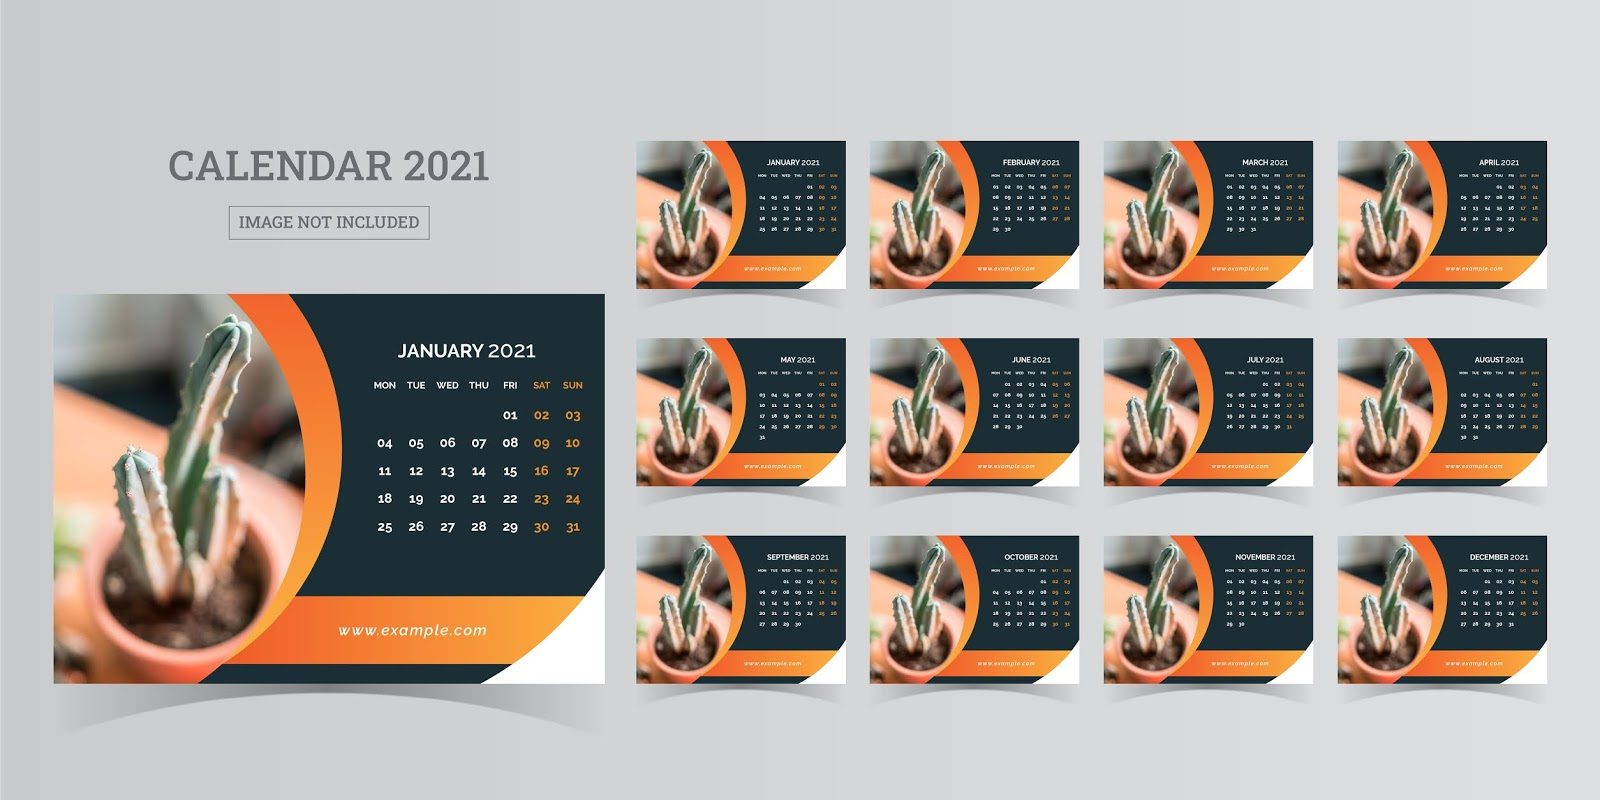 The results of the new year 2021 in more than one professional form and designs, free download